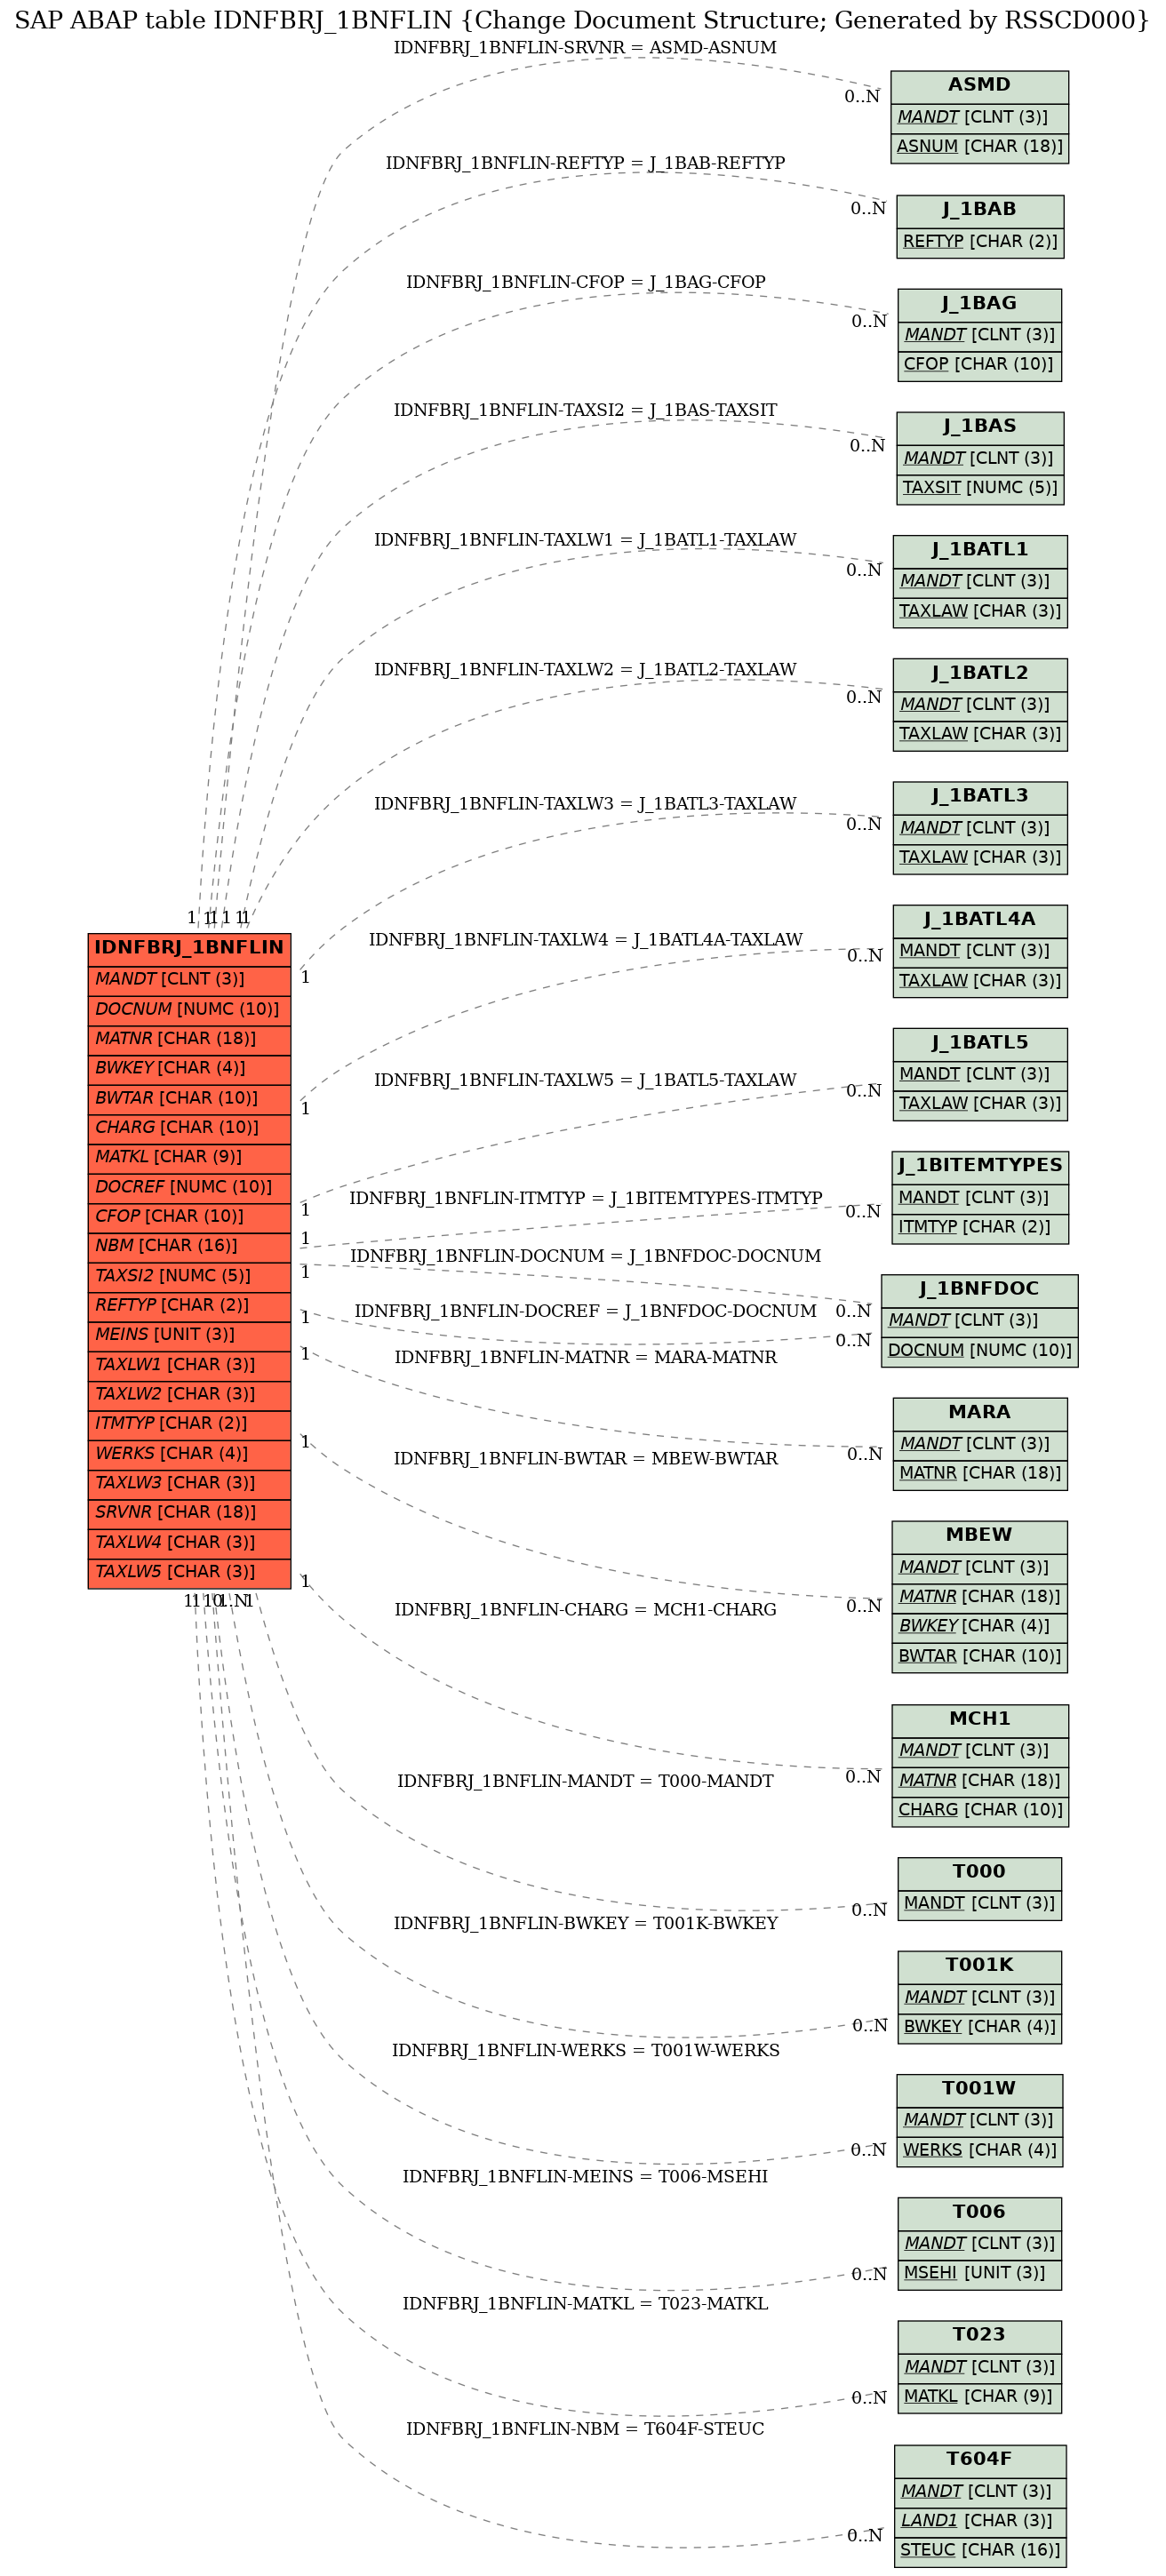 E-R Diagram for table IDNFBRJ_1BNFLIN (Change Document Structure; Generated by RSSCD000)